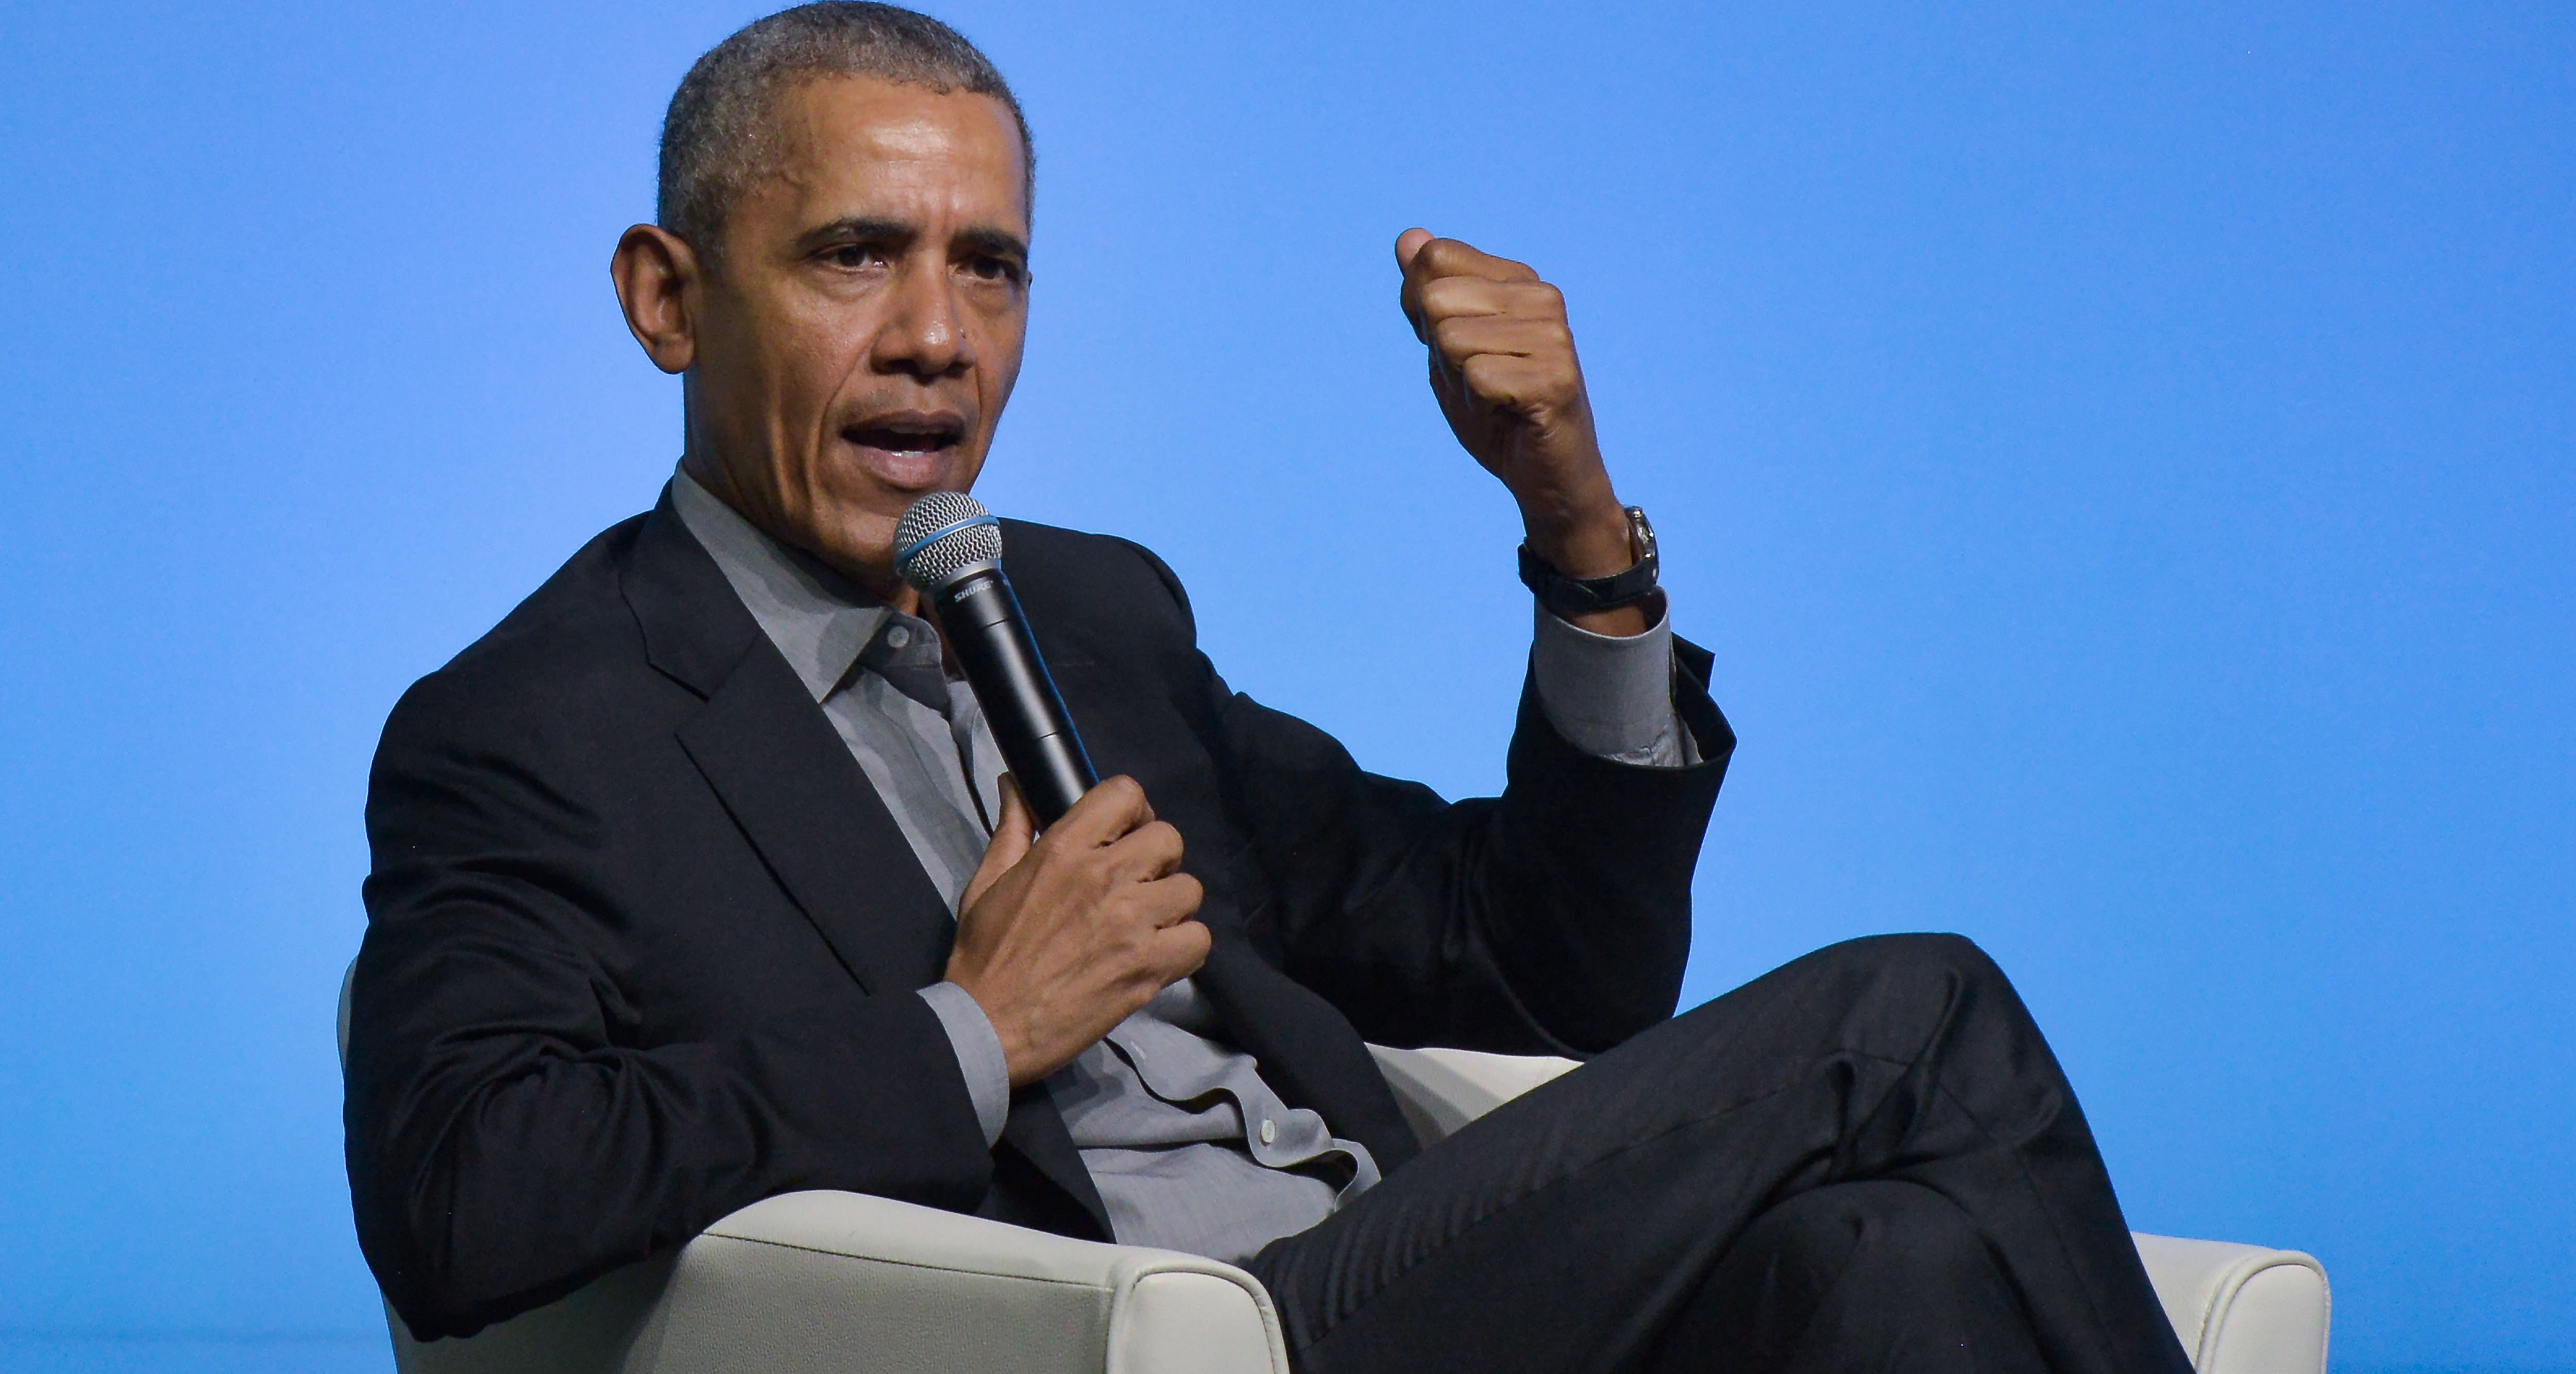 Obama Praises Authors for Helping People in Need